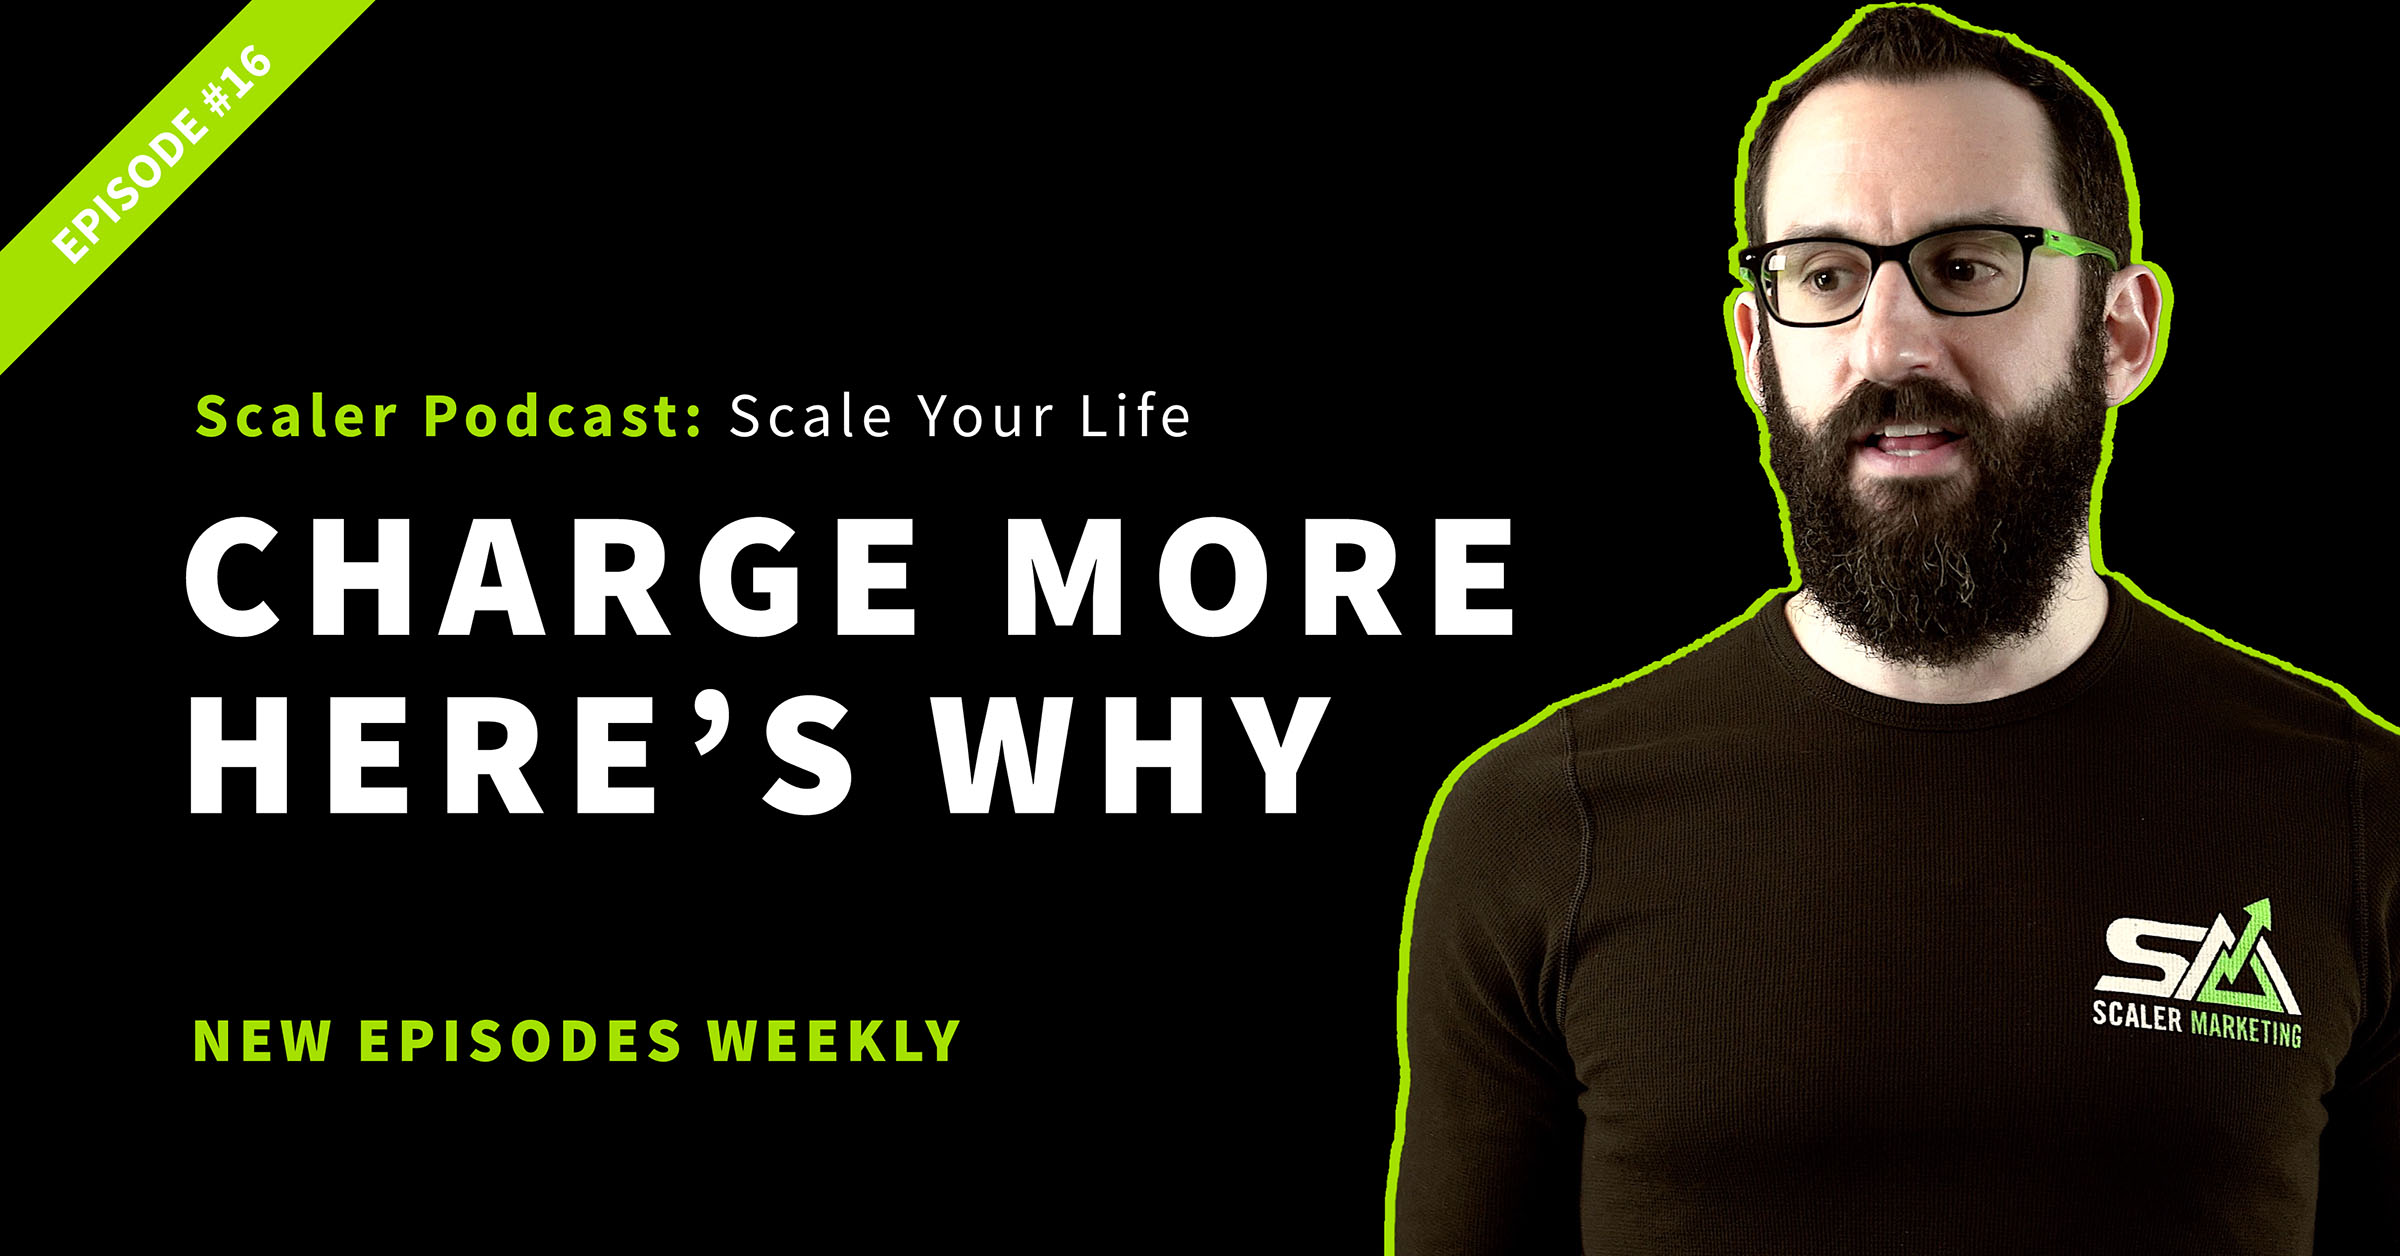 Episode 16 - Charge More Here's Why